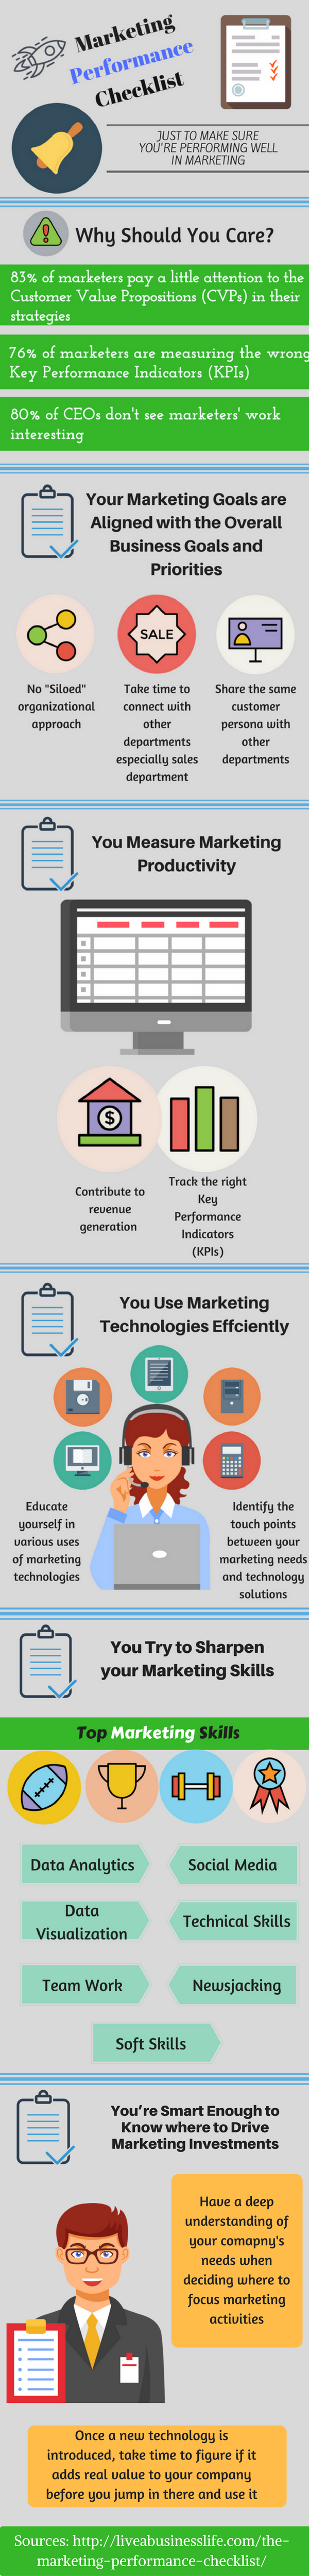 Marketing-Performance-Checklist-infographic-_-liveabusinesslife.com